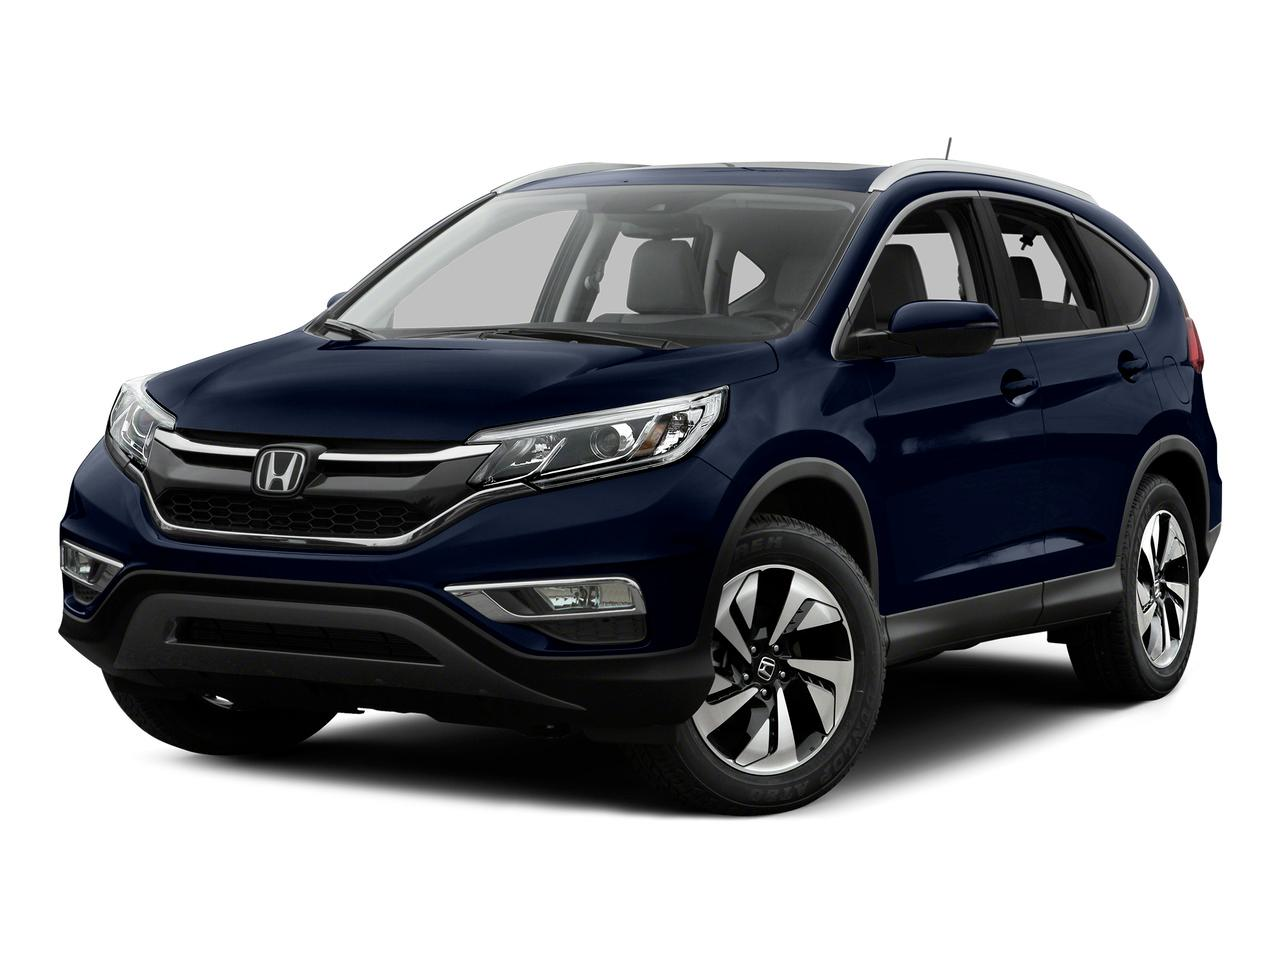 2015 Honda CR-V Vehicle Photo in San Antonio, TX 78238